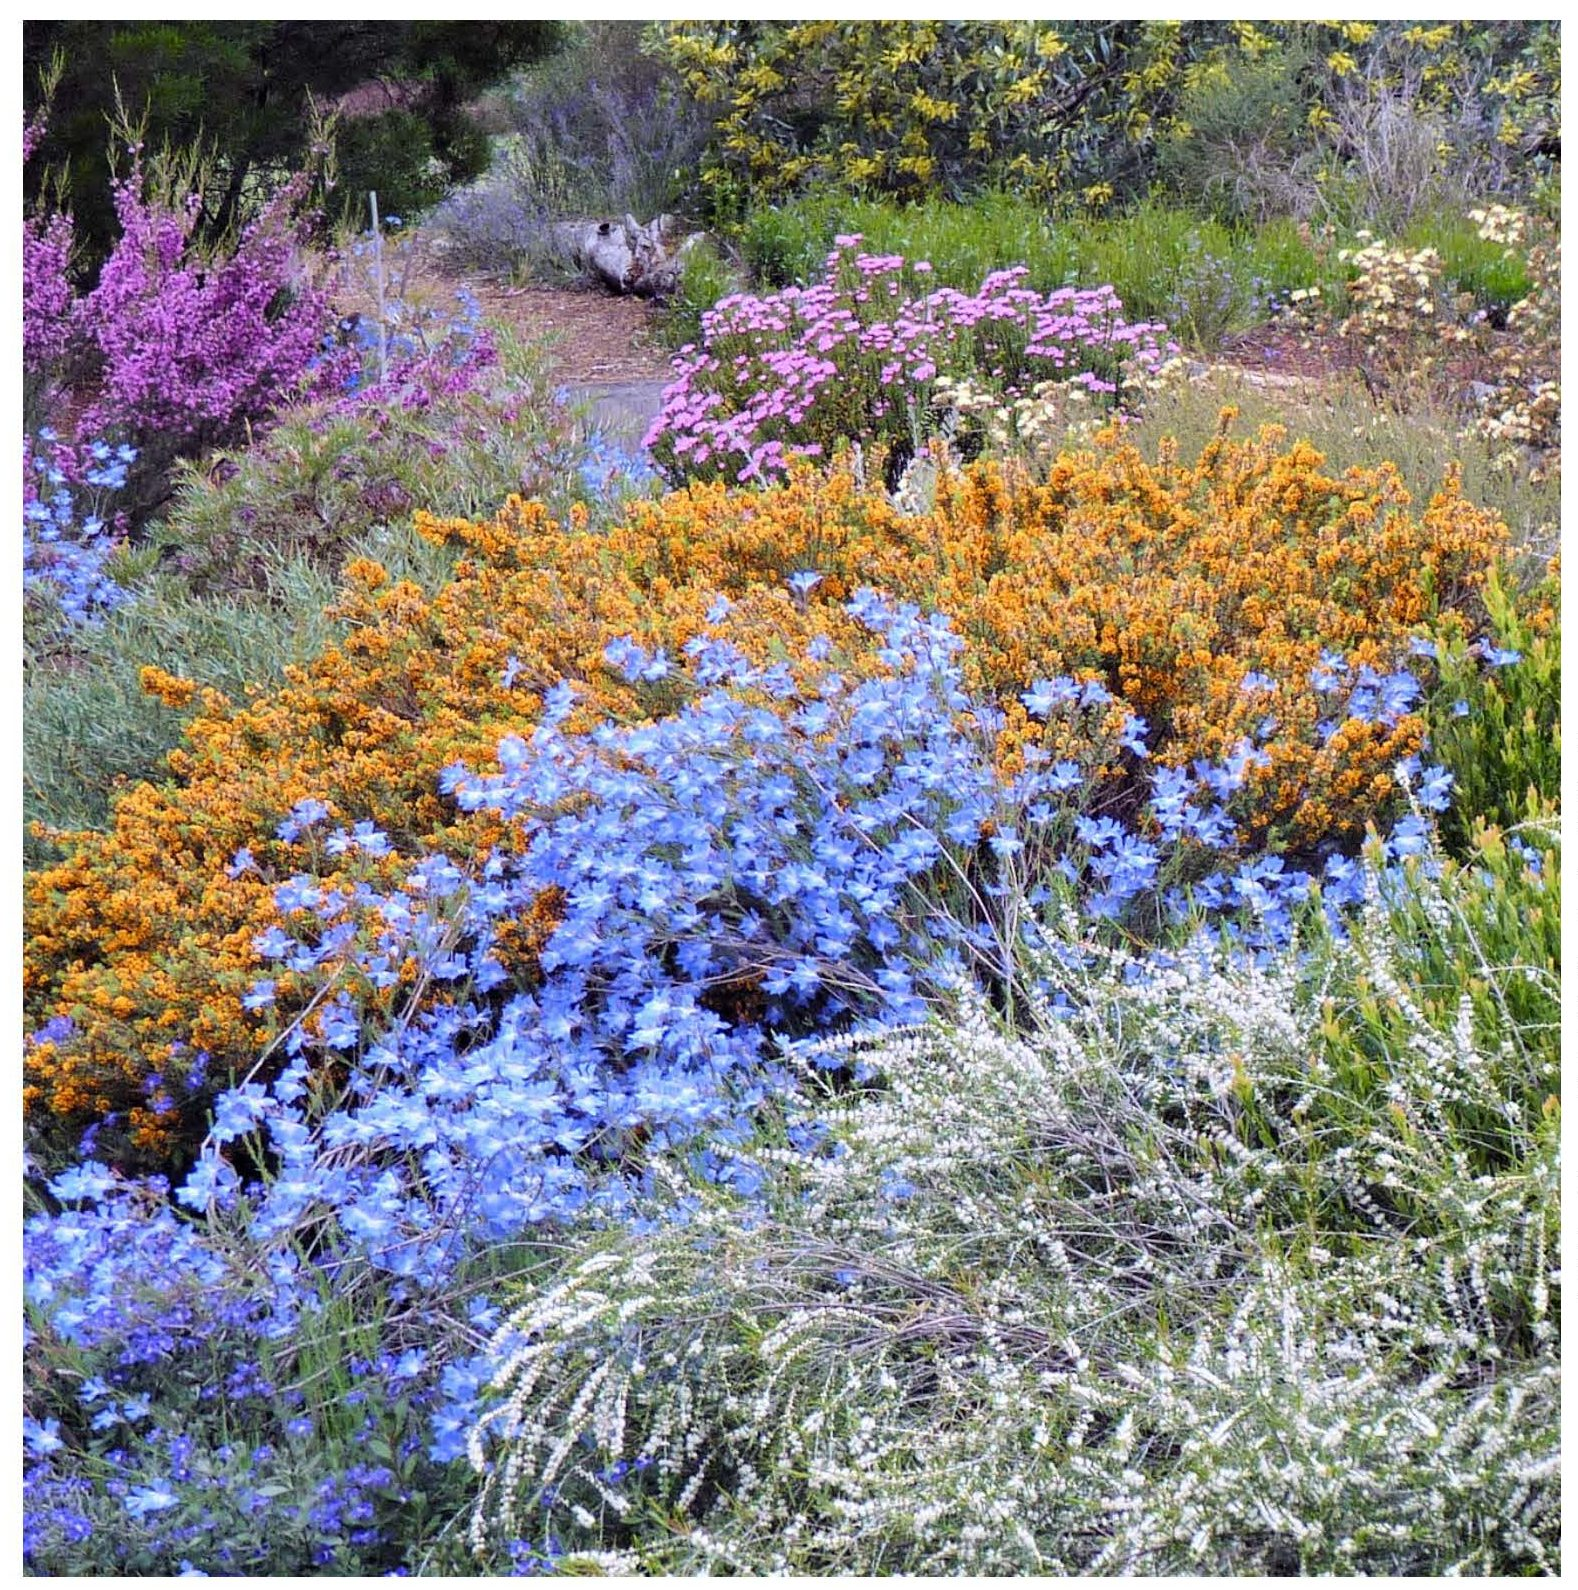 SAVE THE DATE: Wartook Gardens Open Day Featured Image